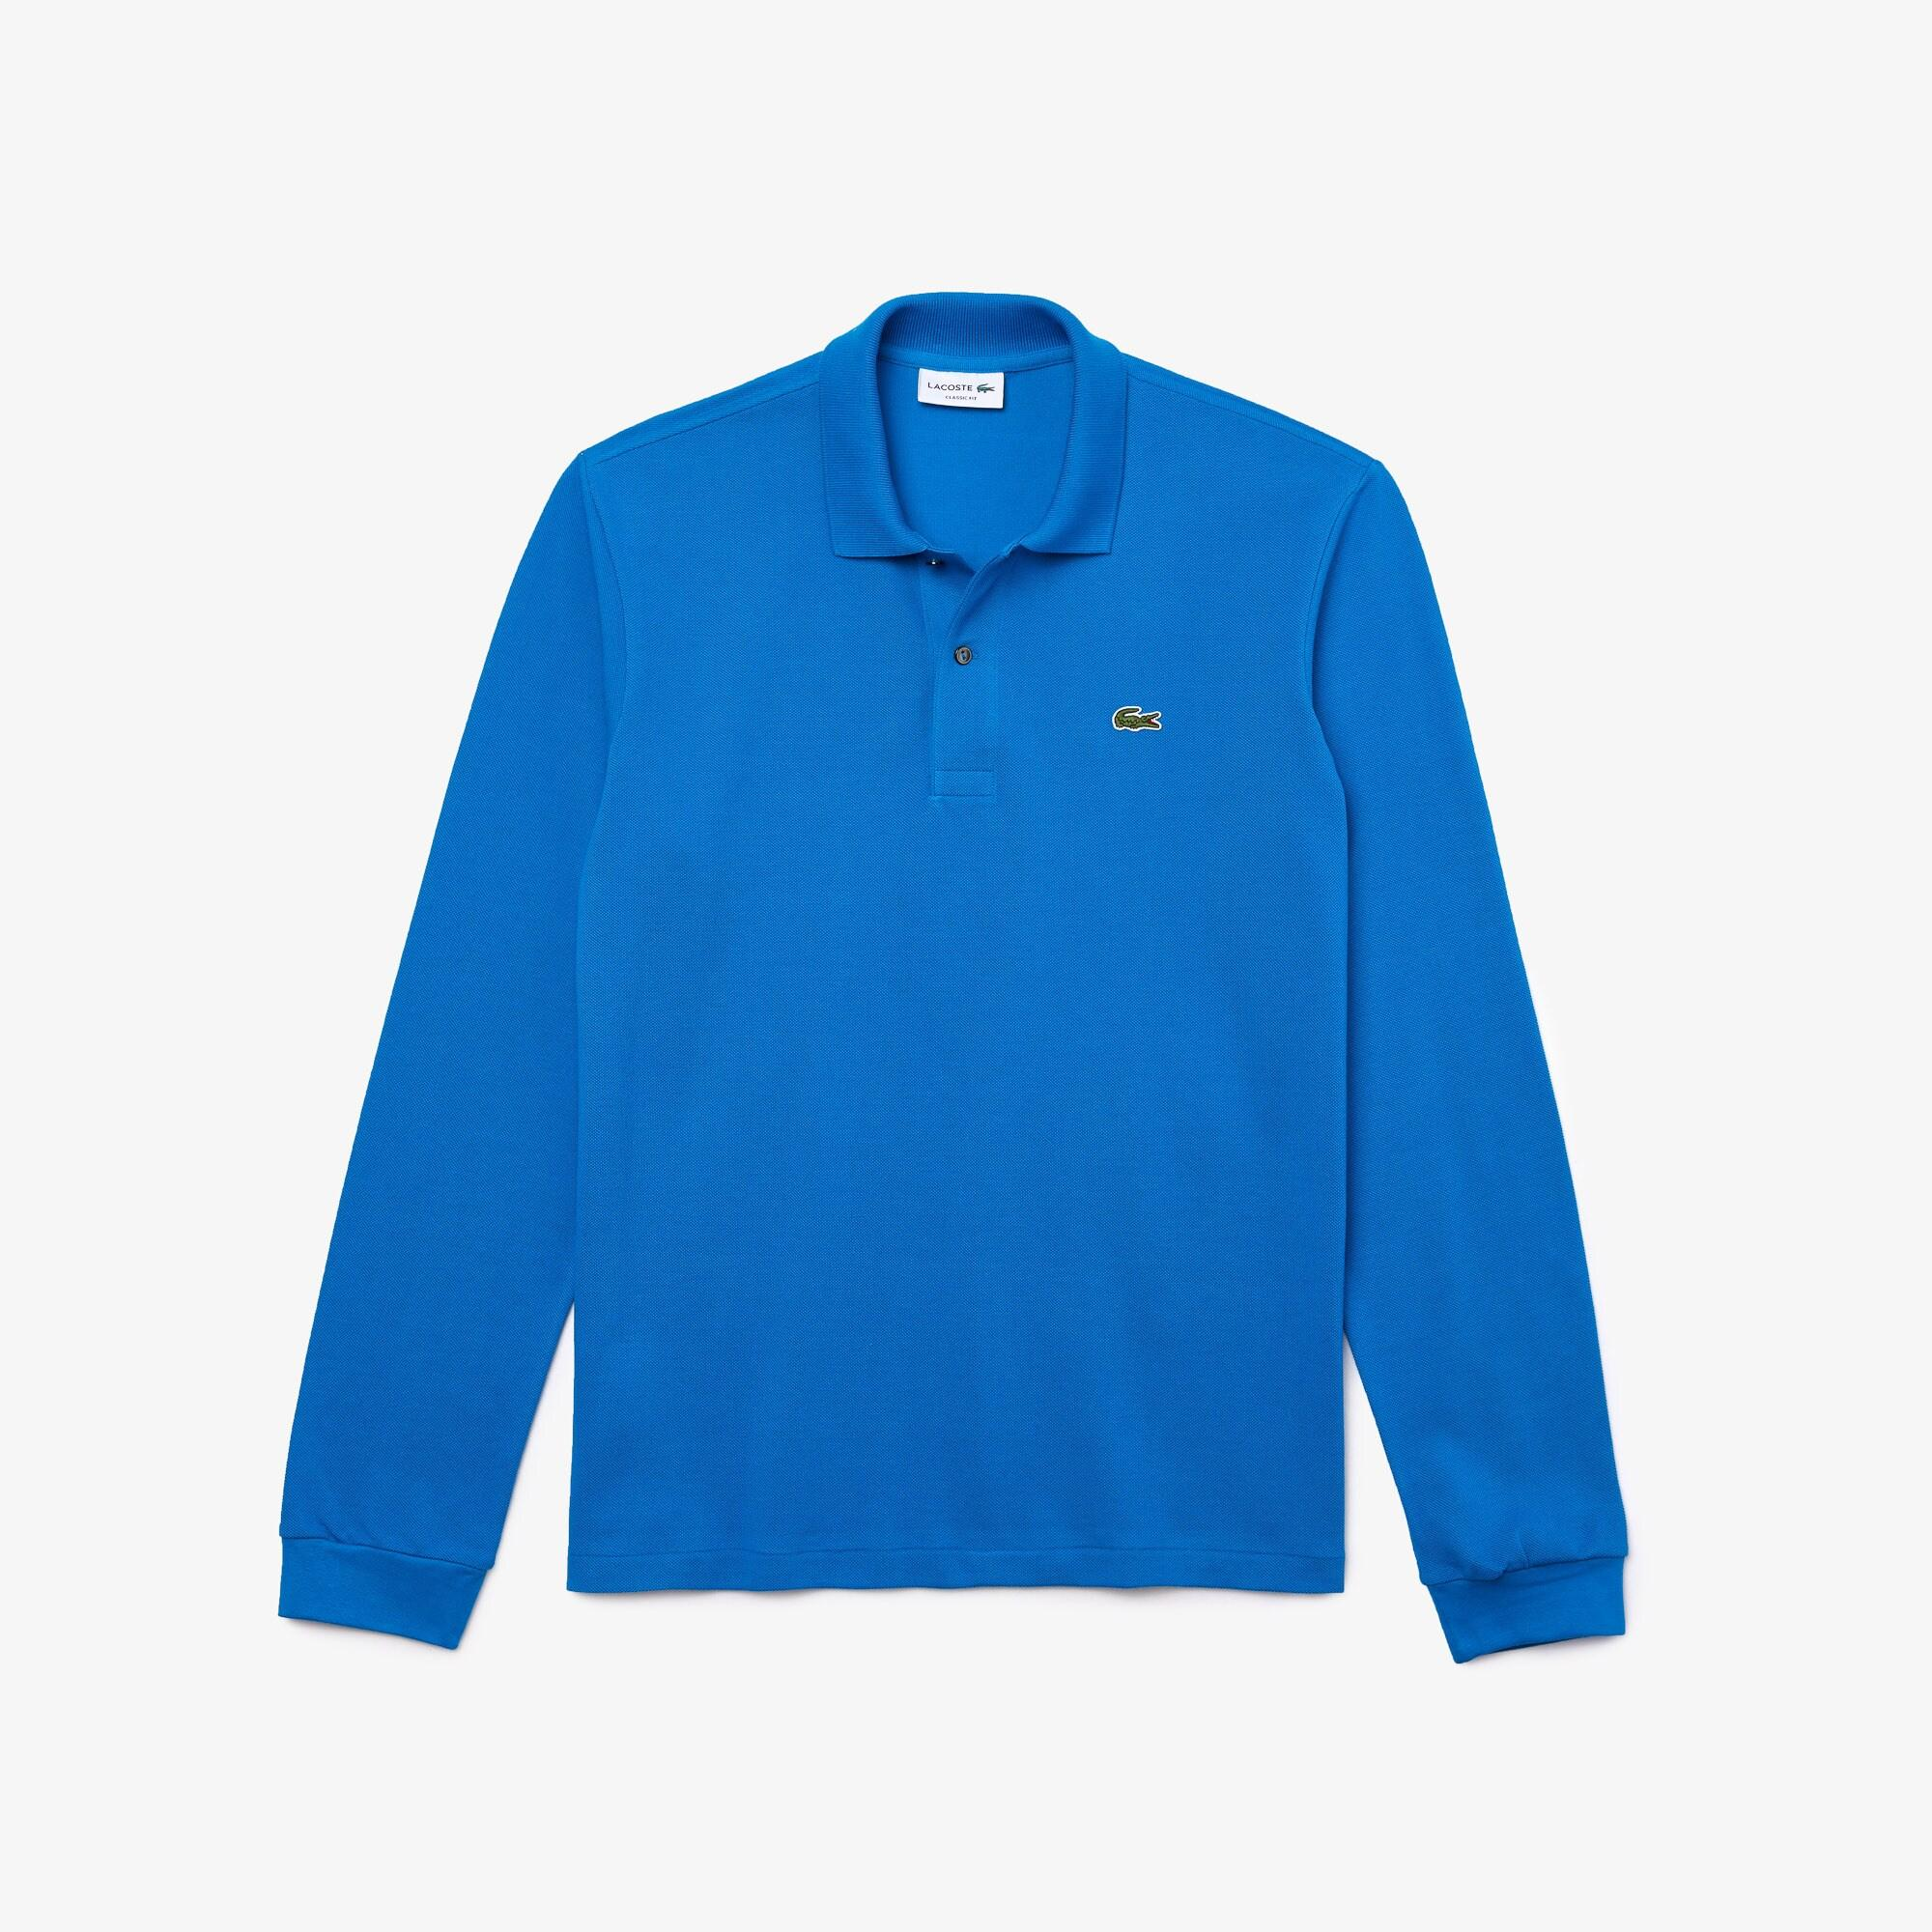 Lacoste Men's Long Sleeve Classic Fit L.13.12 Polo